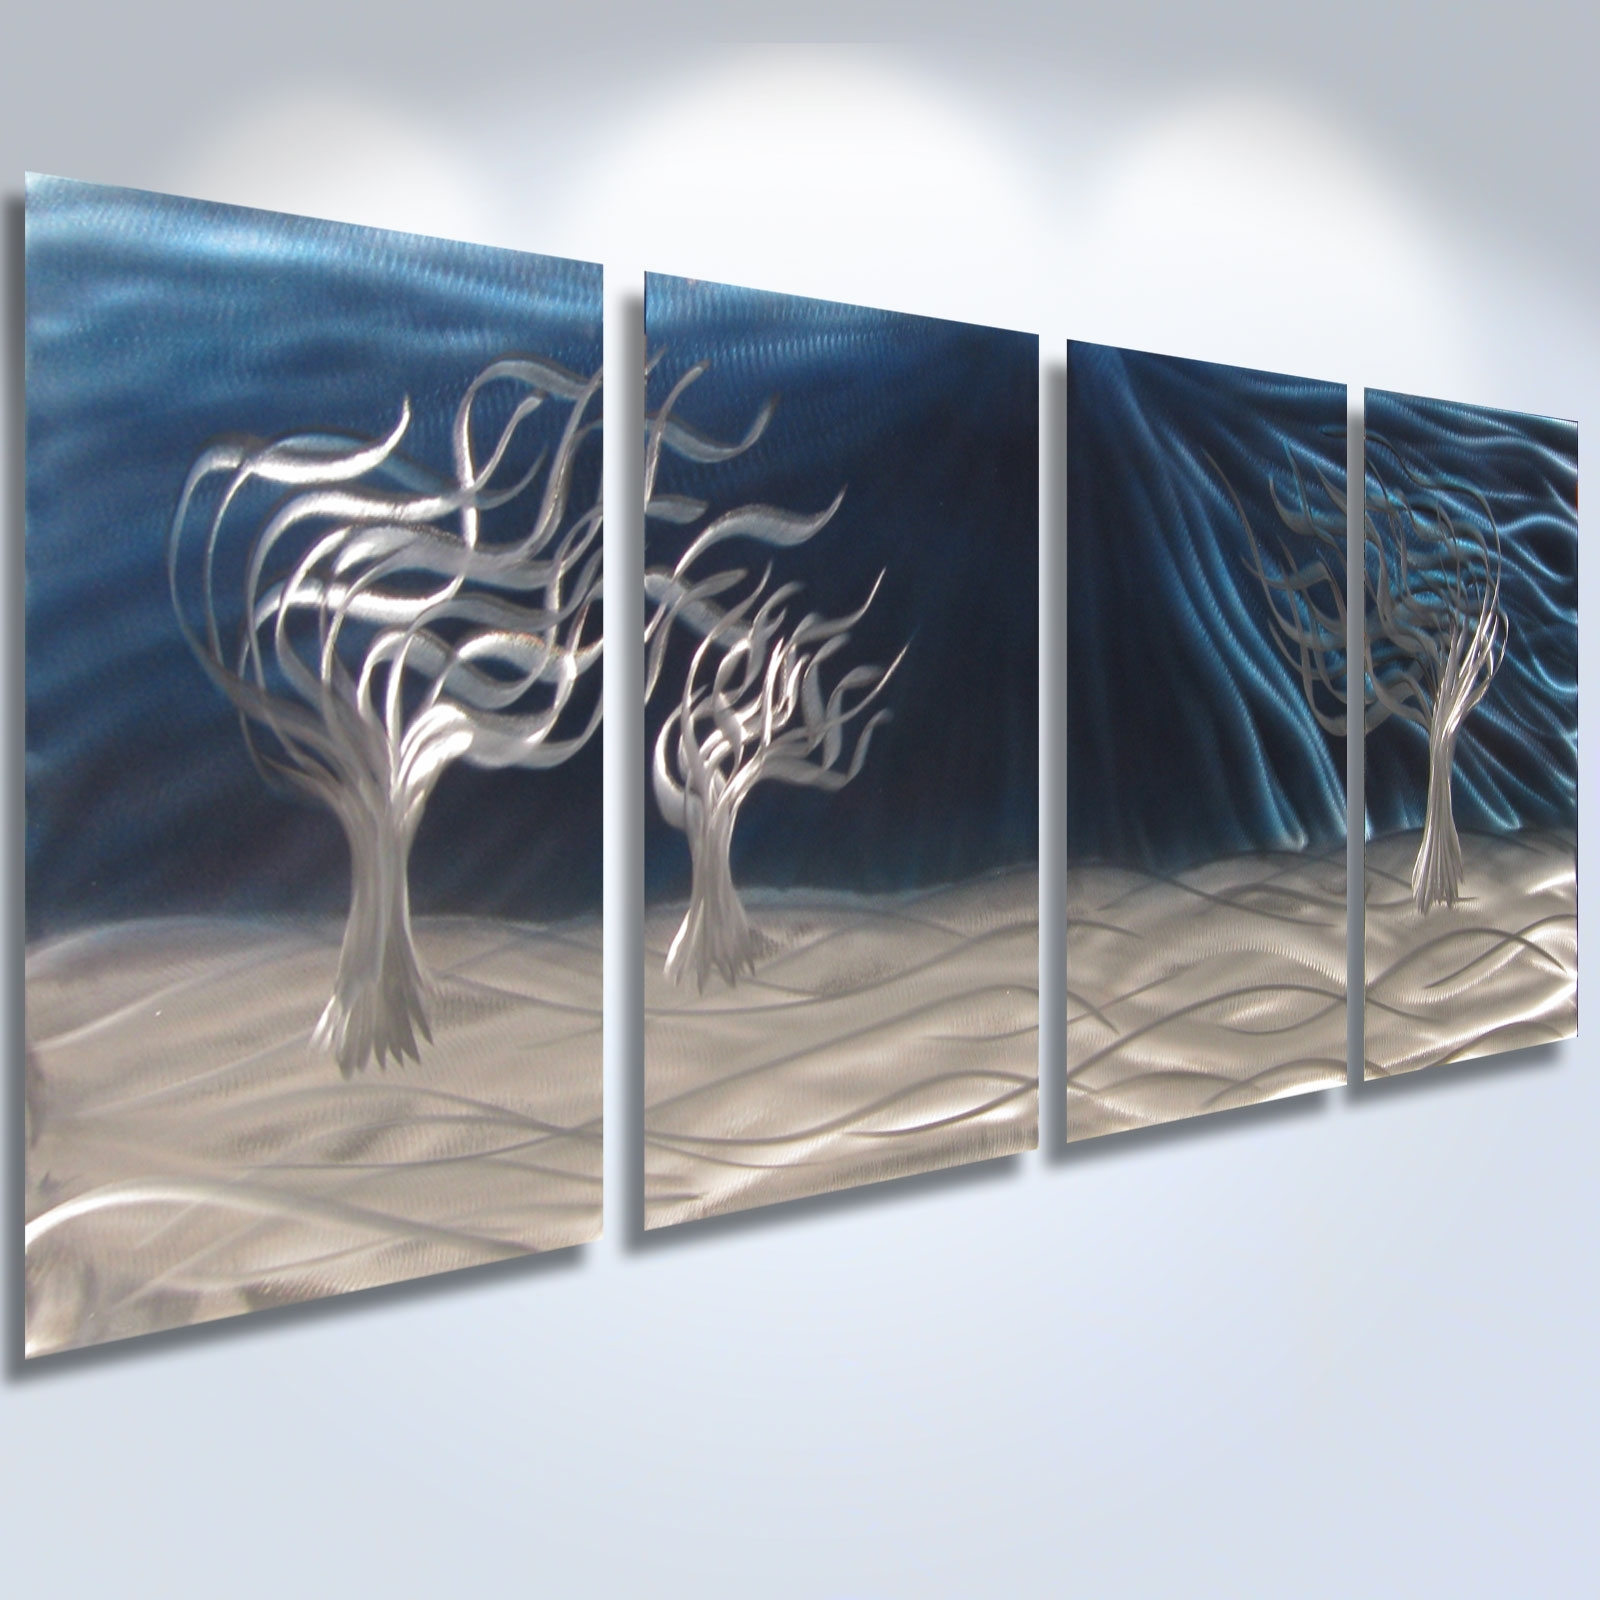 3 Trees Blue – Abstract Metal Wall Art Contemporary Modern Decor Within Well Known Abstract Iron Wall Art (Gallery 12 of 15)